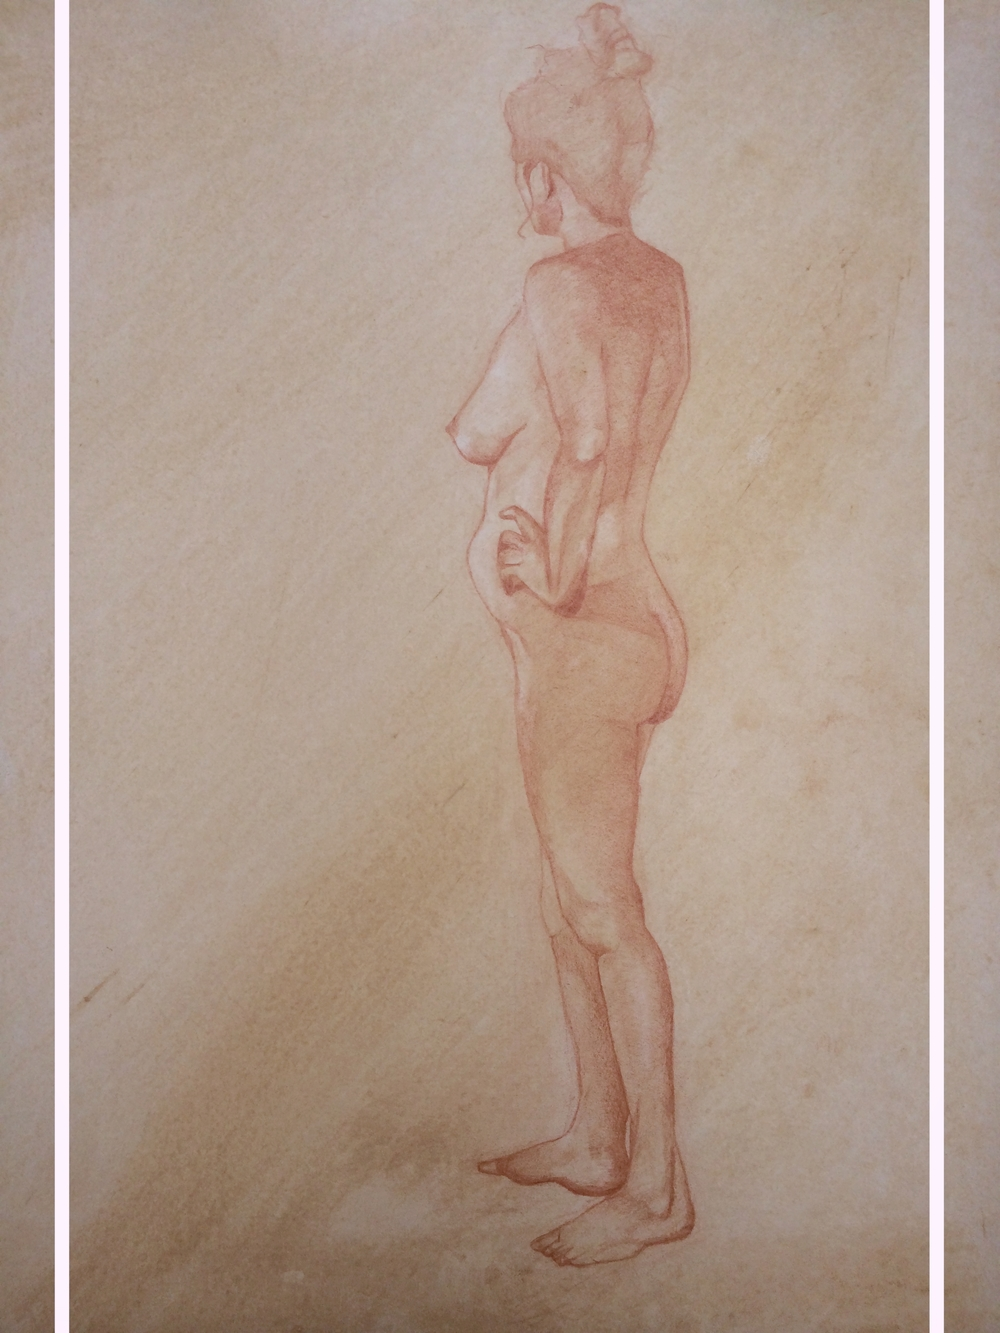 Frank Lombardo's Figure Drawing workshop, Marshall, NC 2016